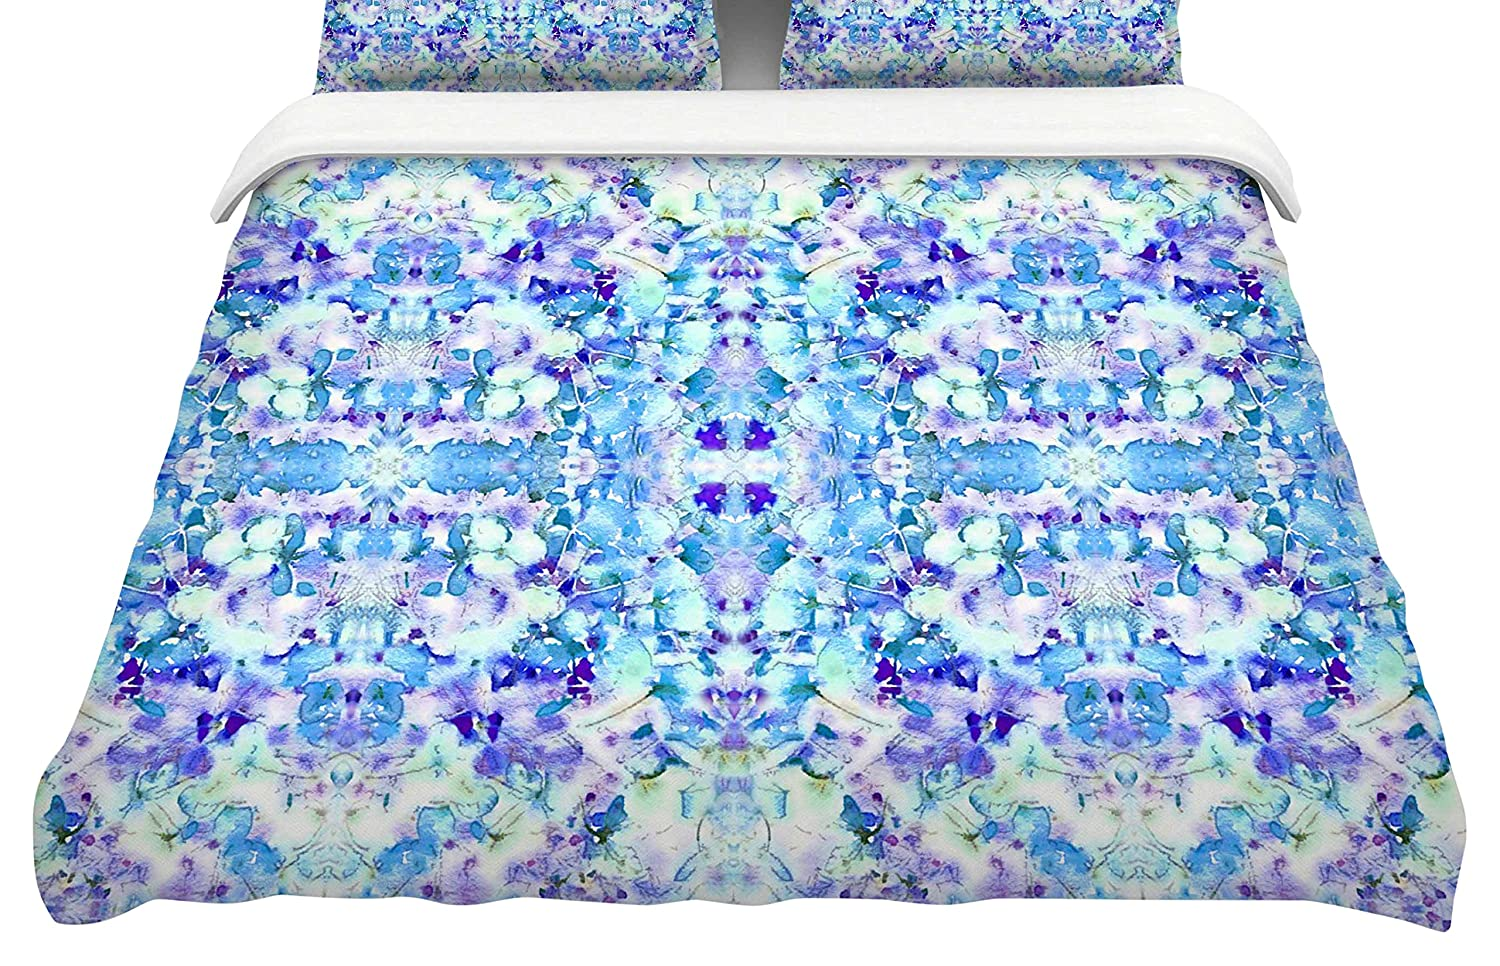 104 x 88, Kess InHouse Carolyn Greifeld Floral Fantasy Blue Reflection King Cotton Duvet Cover